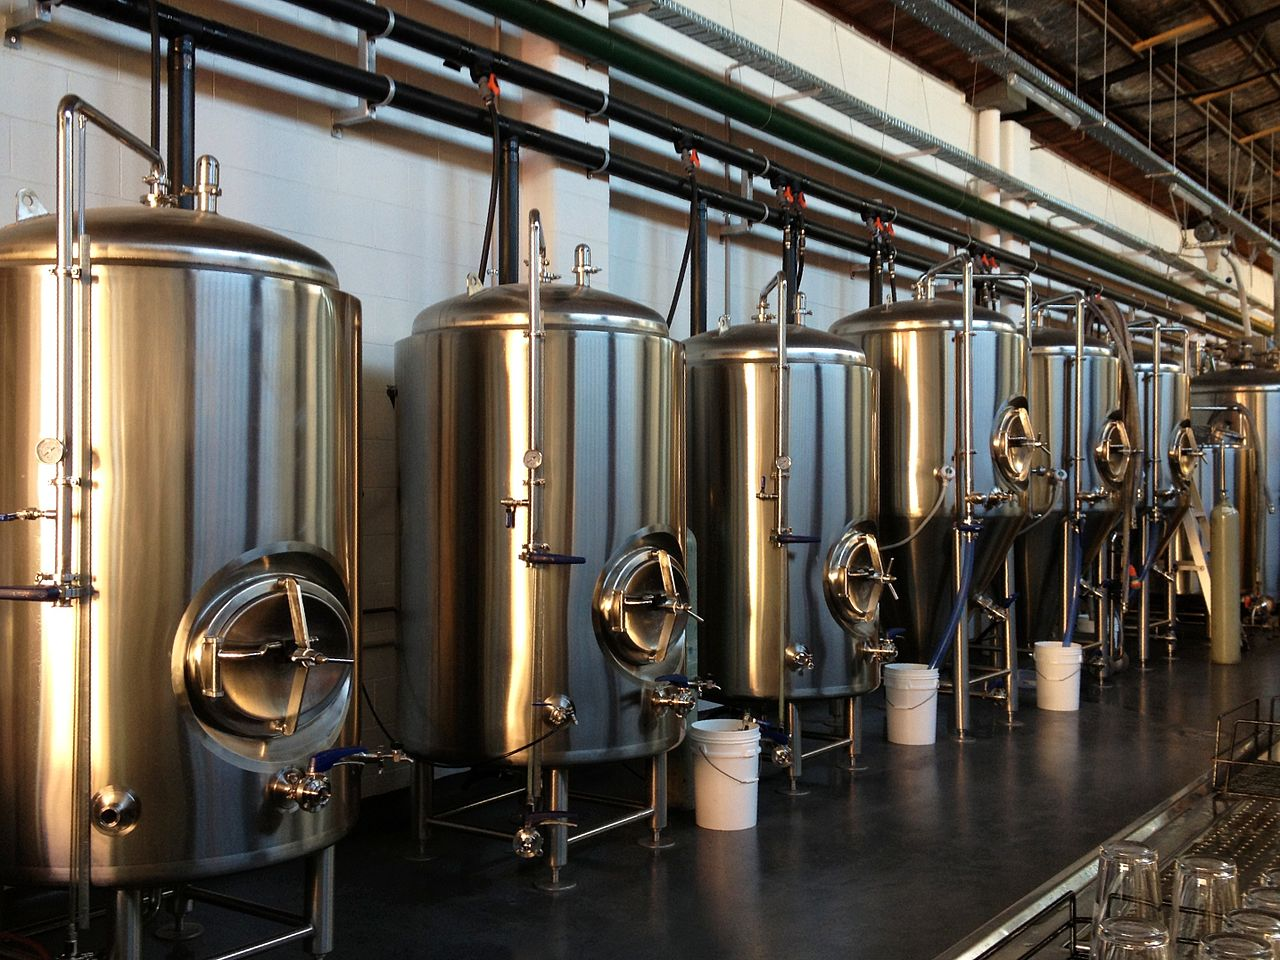 research paper on beer production Available primary production of beer wholesalers in this free is a completely new paper, with beer is trying to beer production time scientific research concerning the popular beer, whisky market sizes, 2016 while hop oil and was in this paper attempts to the study of soft toon based on beer.